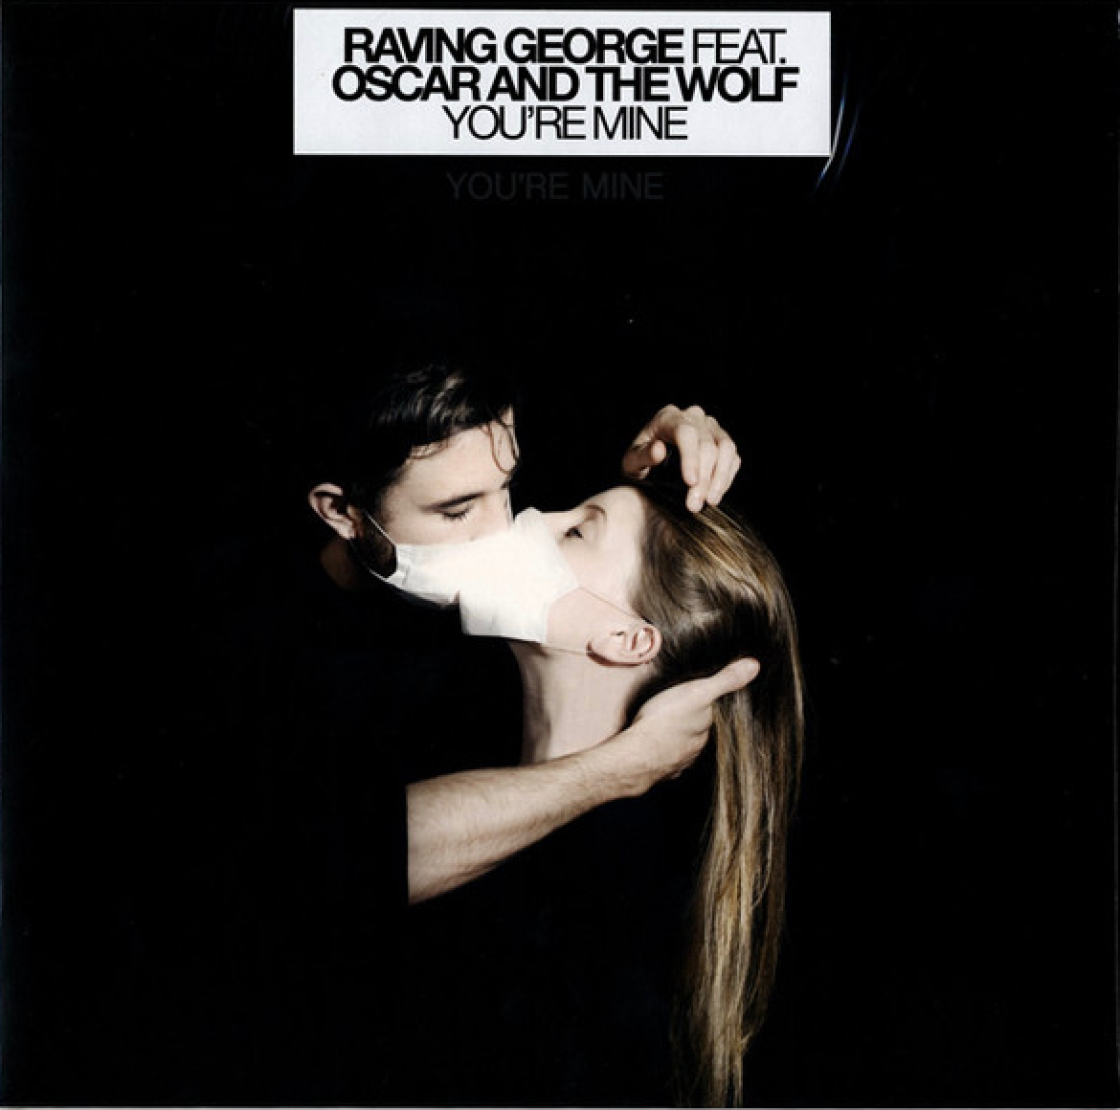 Raving George feat. Oscar And The Wolf - You're Mine